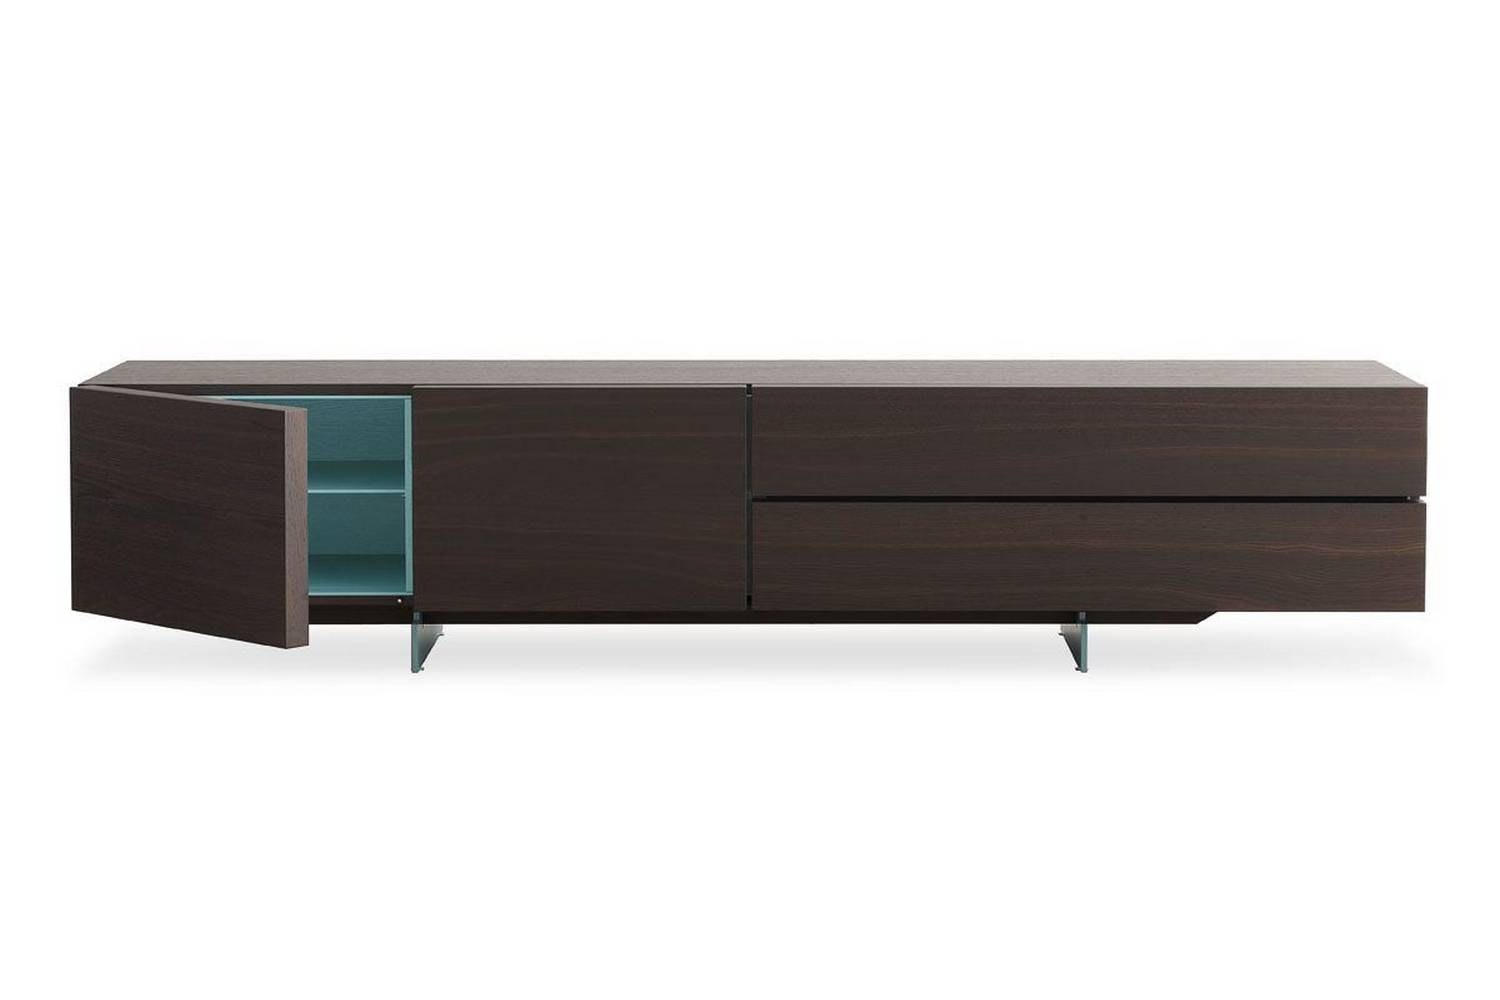 Pandora Sideboard by J. M. Massaud for Poliform